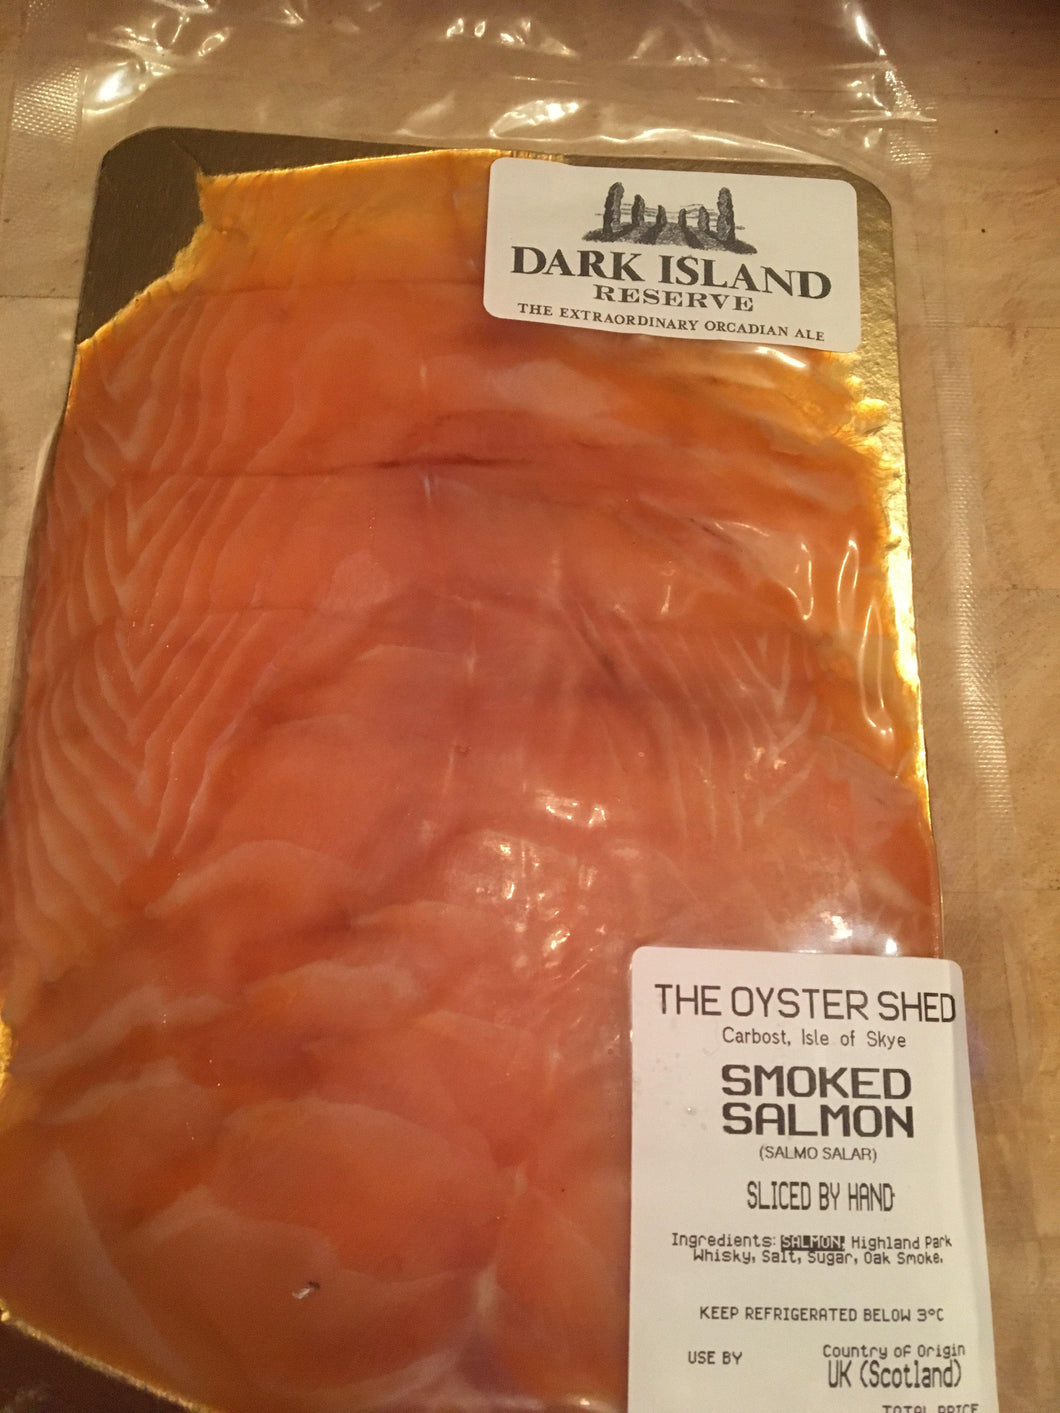 Dark Island Ale Cold Smoked Salmon - The Oyster Shed